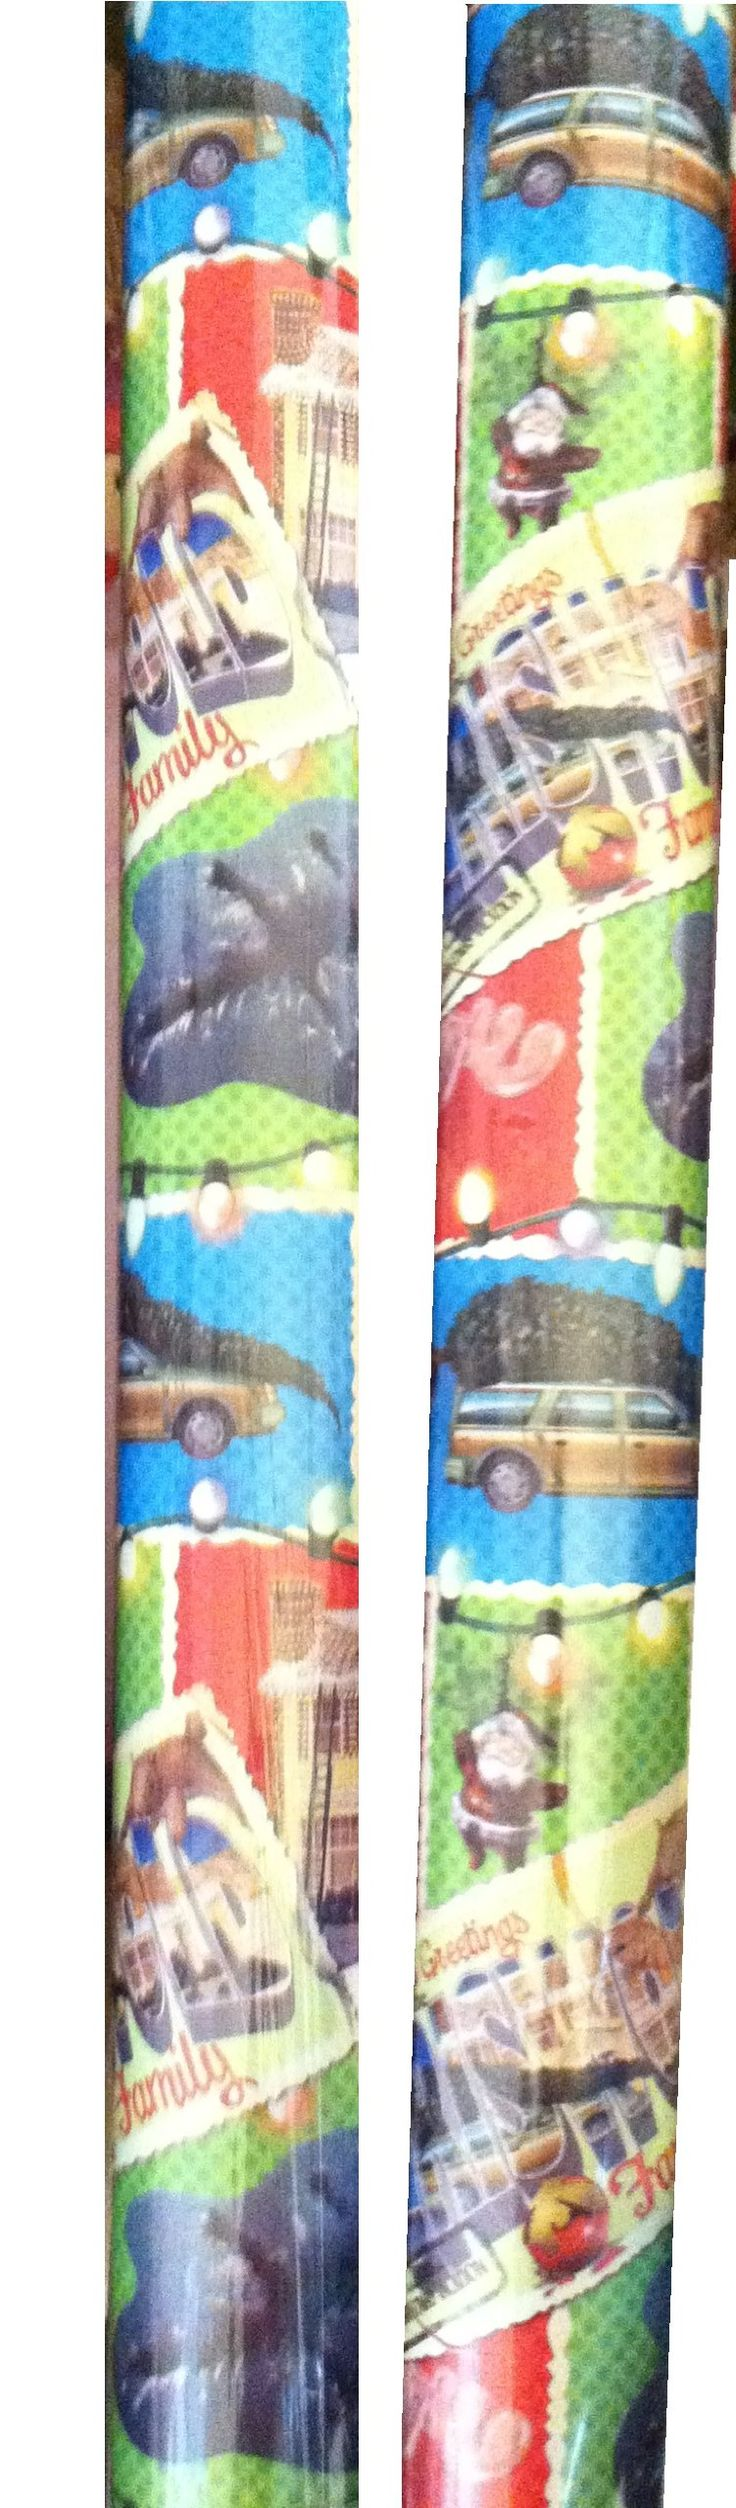 Griswold Christmas Party Ideas Part - 22: National Lampoonu0027s Christmas VACATION ~ Gift Wrap ~ 40 Sq. Ft. (1 Roll